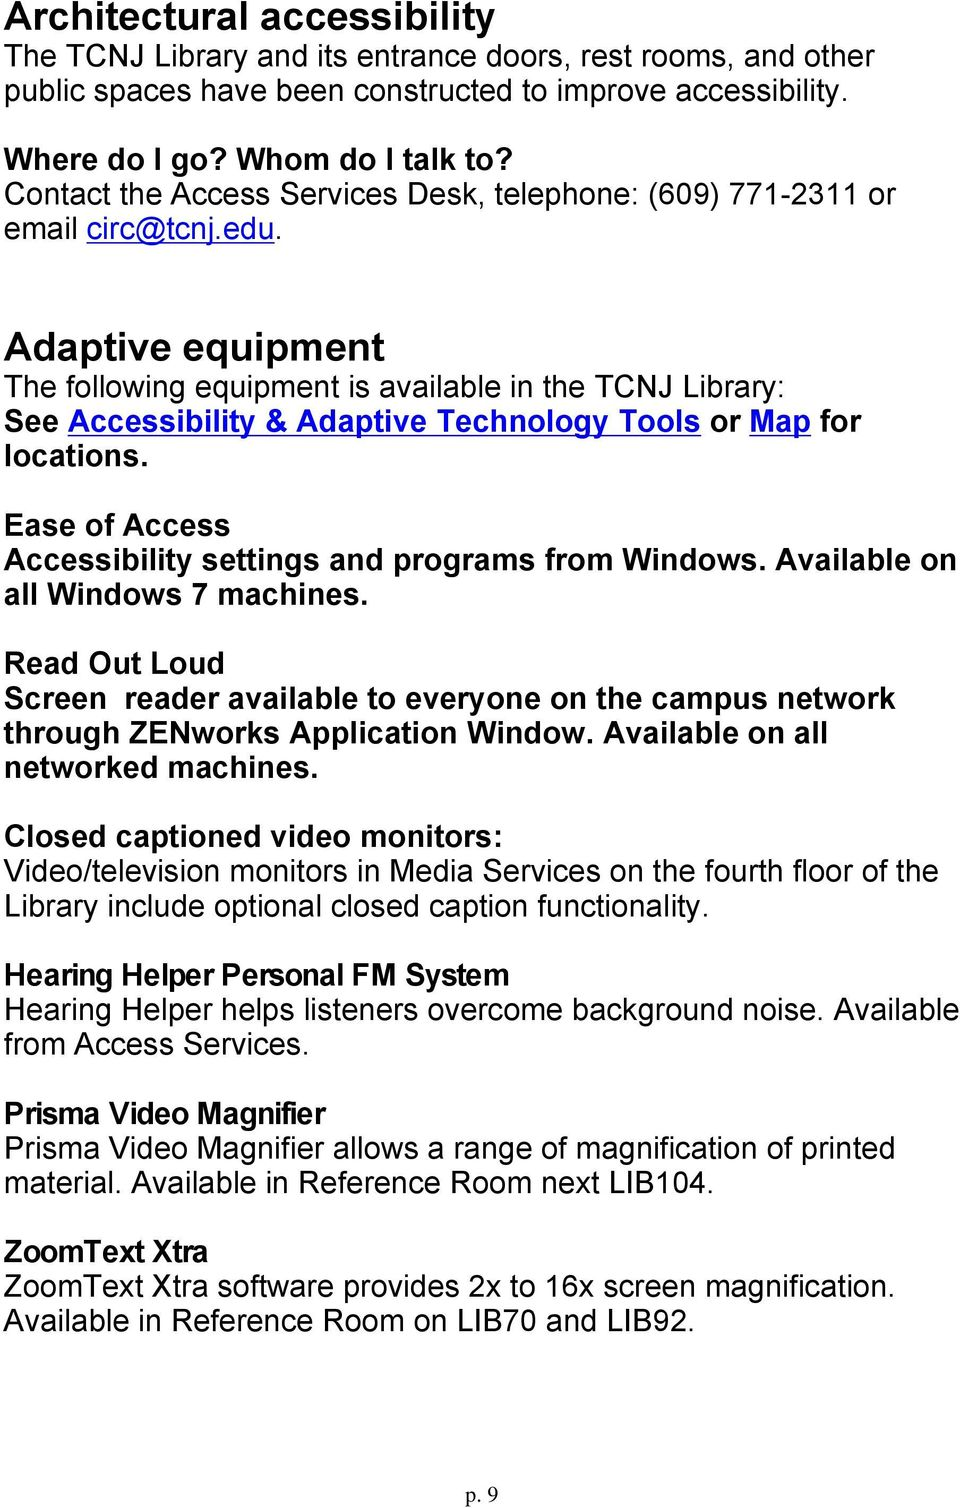 Adaptive equipment The following equipment is available in the TCNJ Library: See Accessibility & Adaptive Technology Tools or Map for locations.